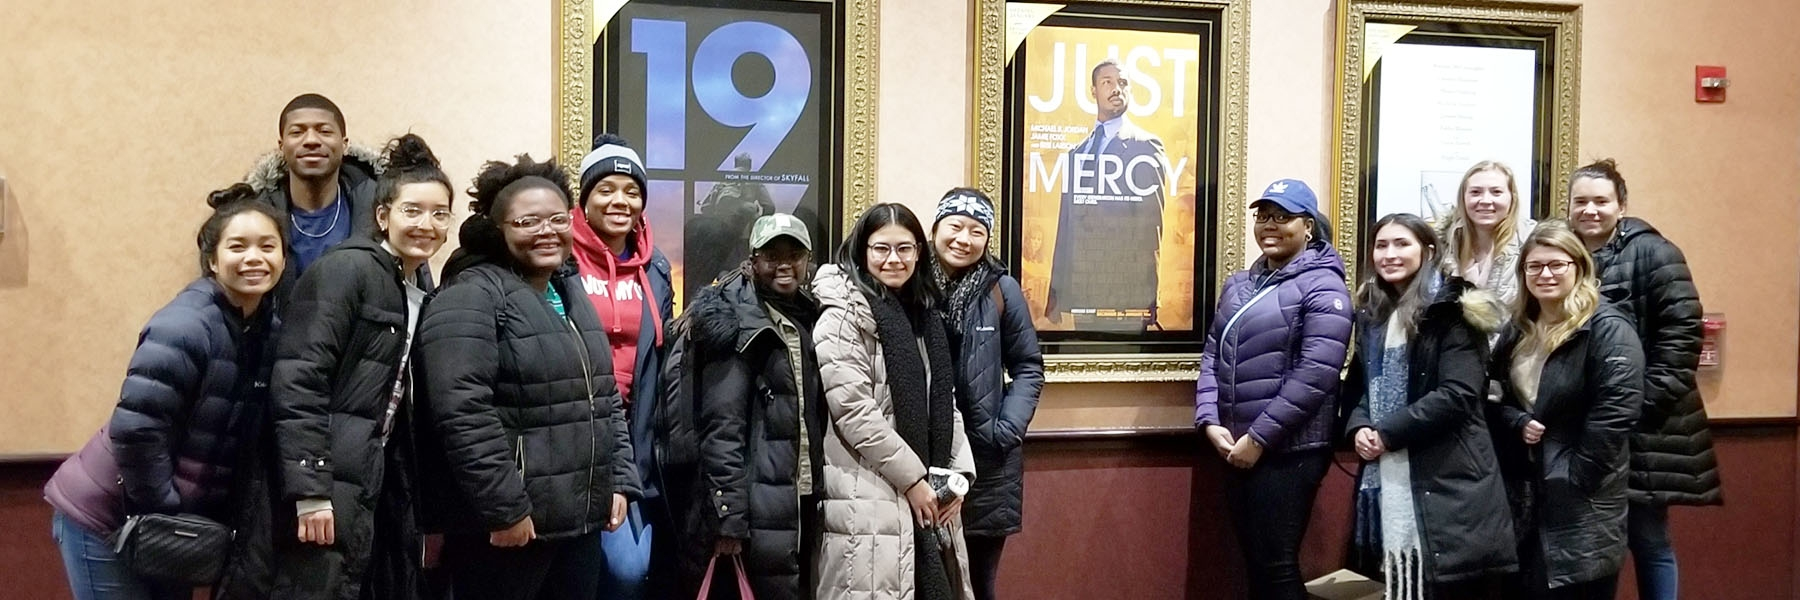 Photo shows group of students at theater in front of Just Mercy movie poster